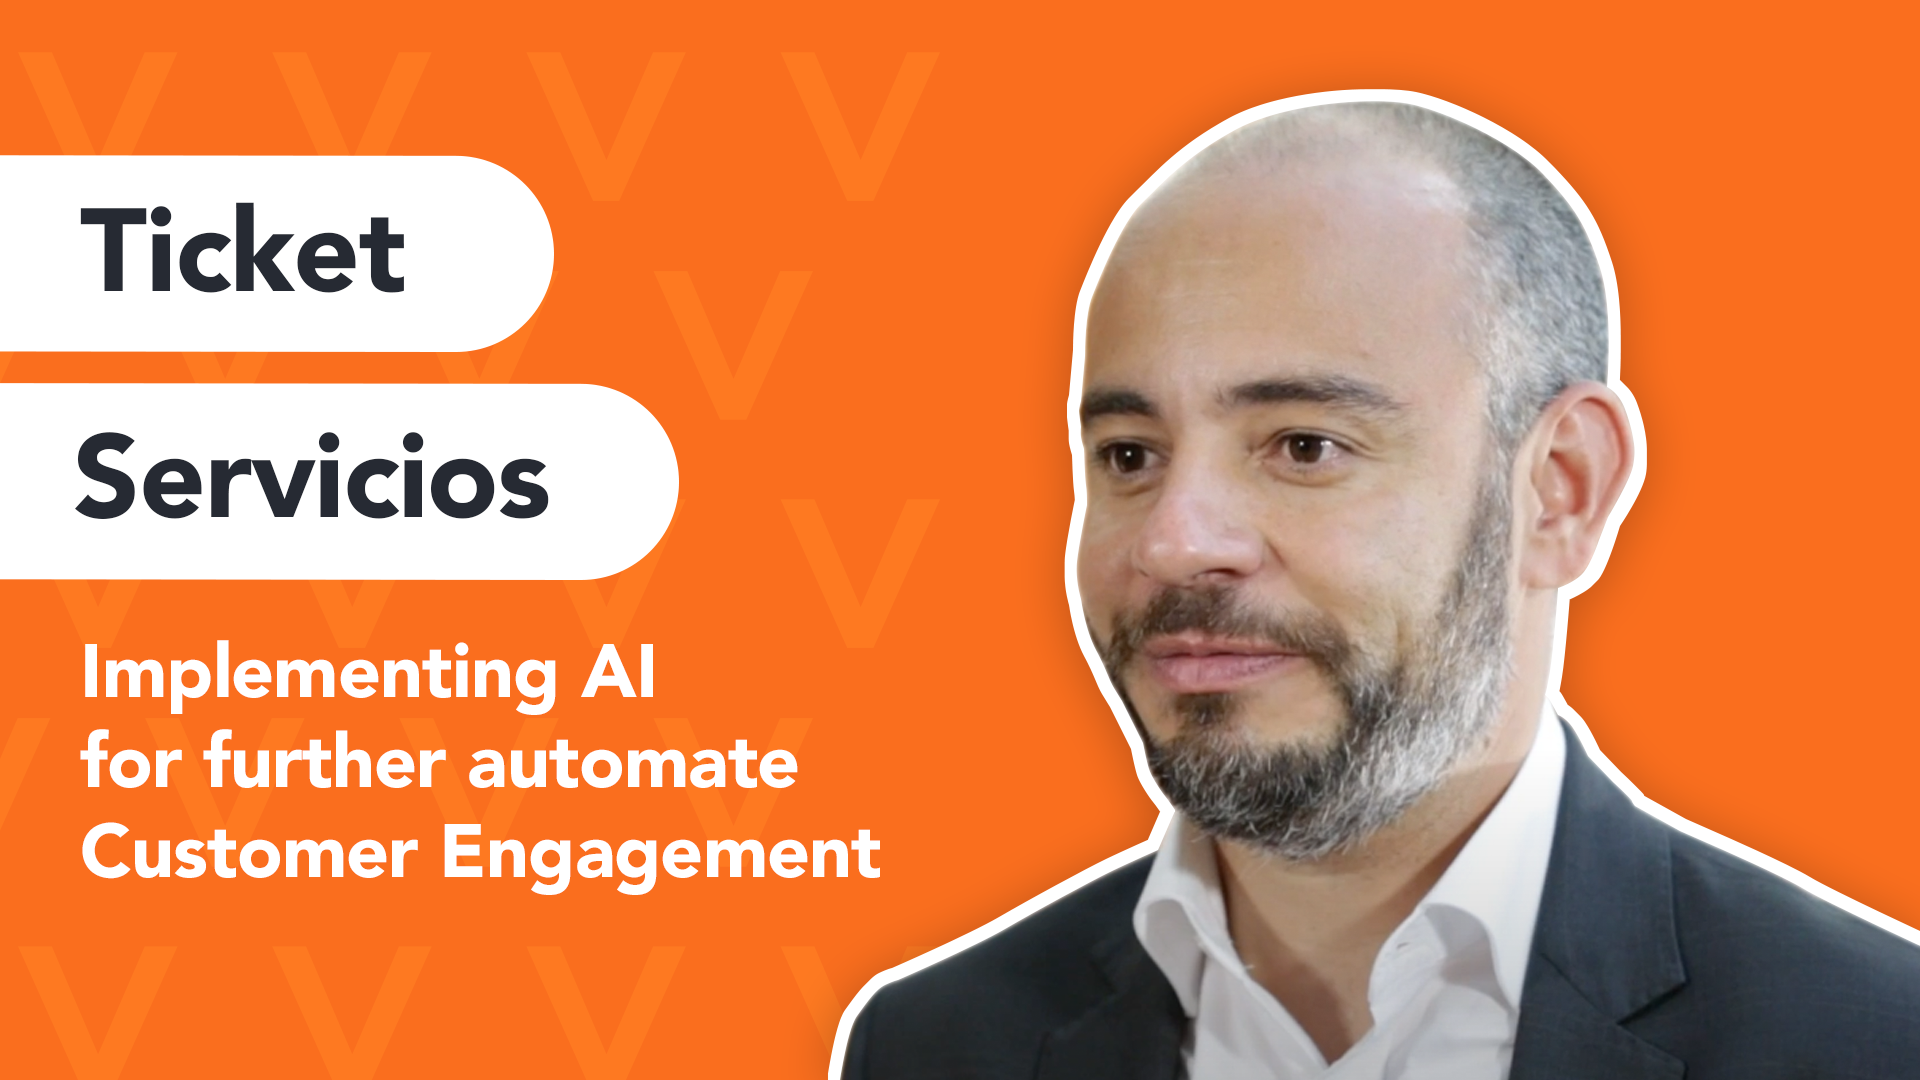 Ticket Implements AI from Verint to Further Automate Customer Engagement (Portuguese)